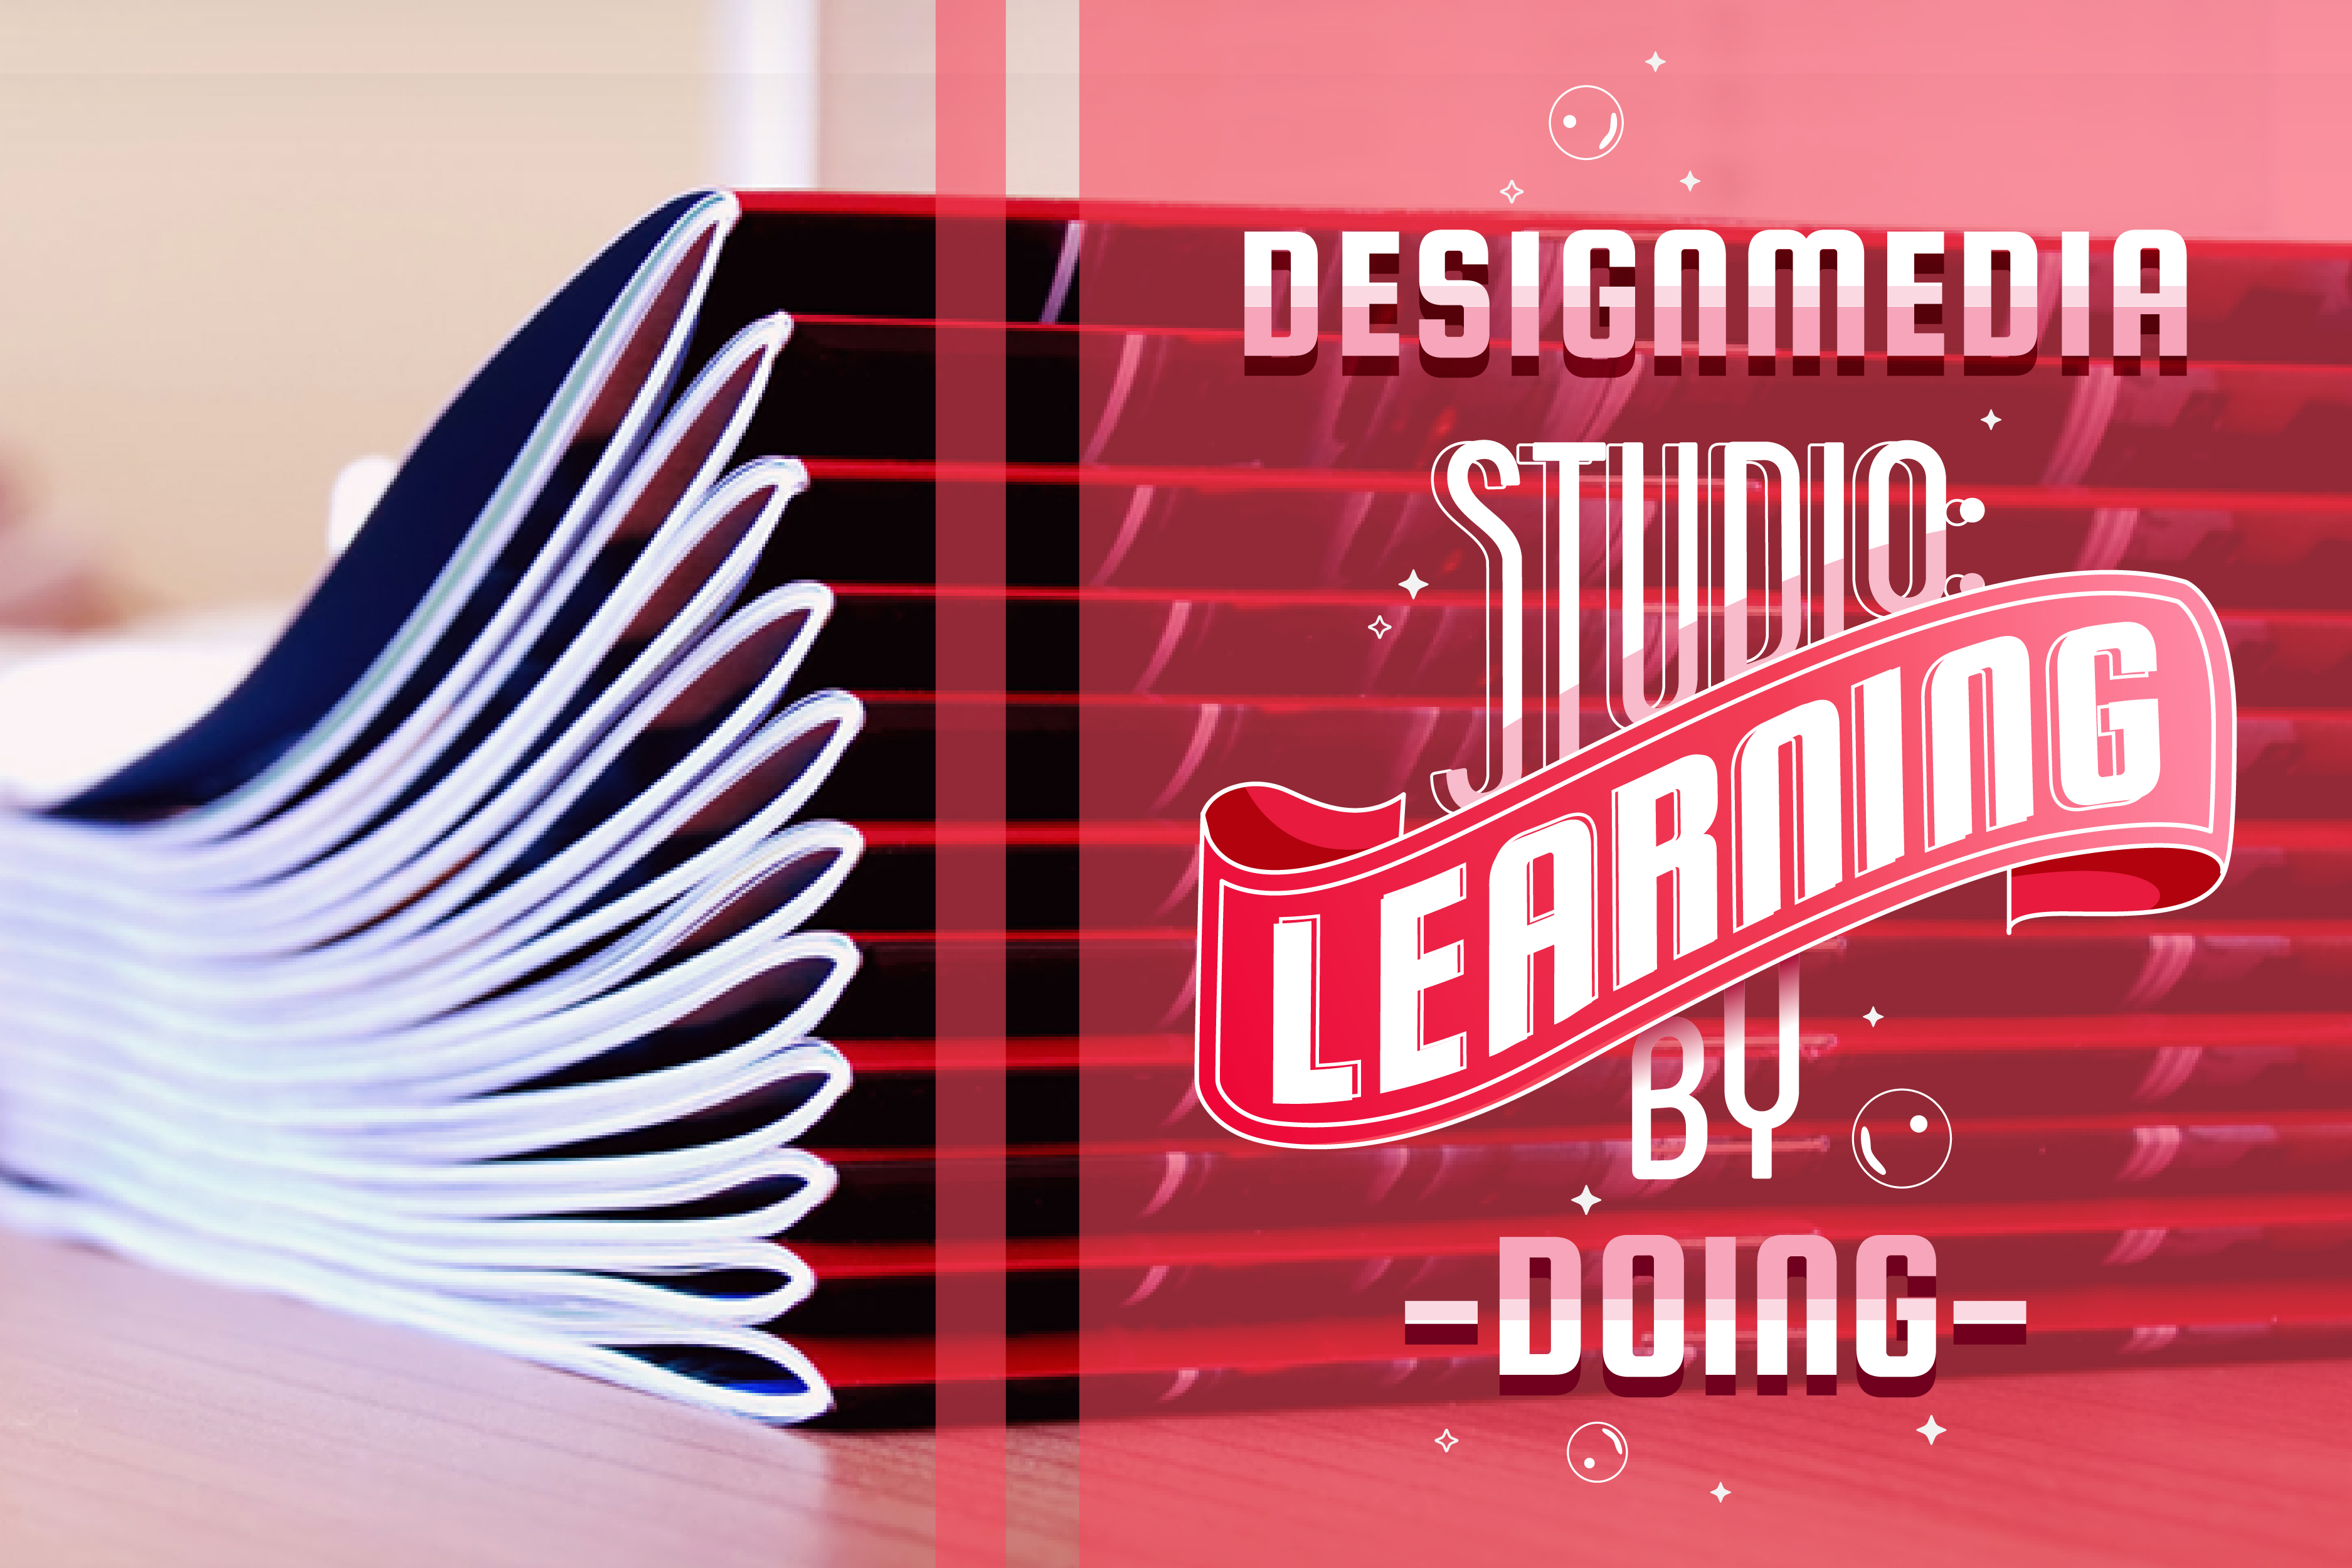 Designmedia Studio: Learning by Doing